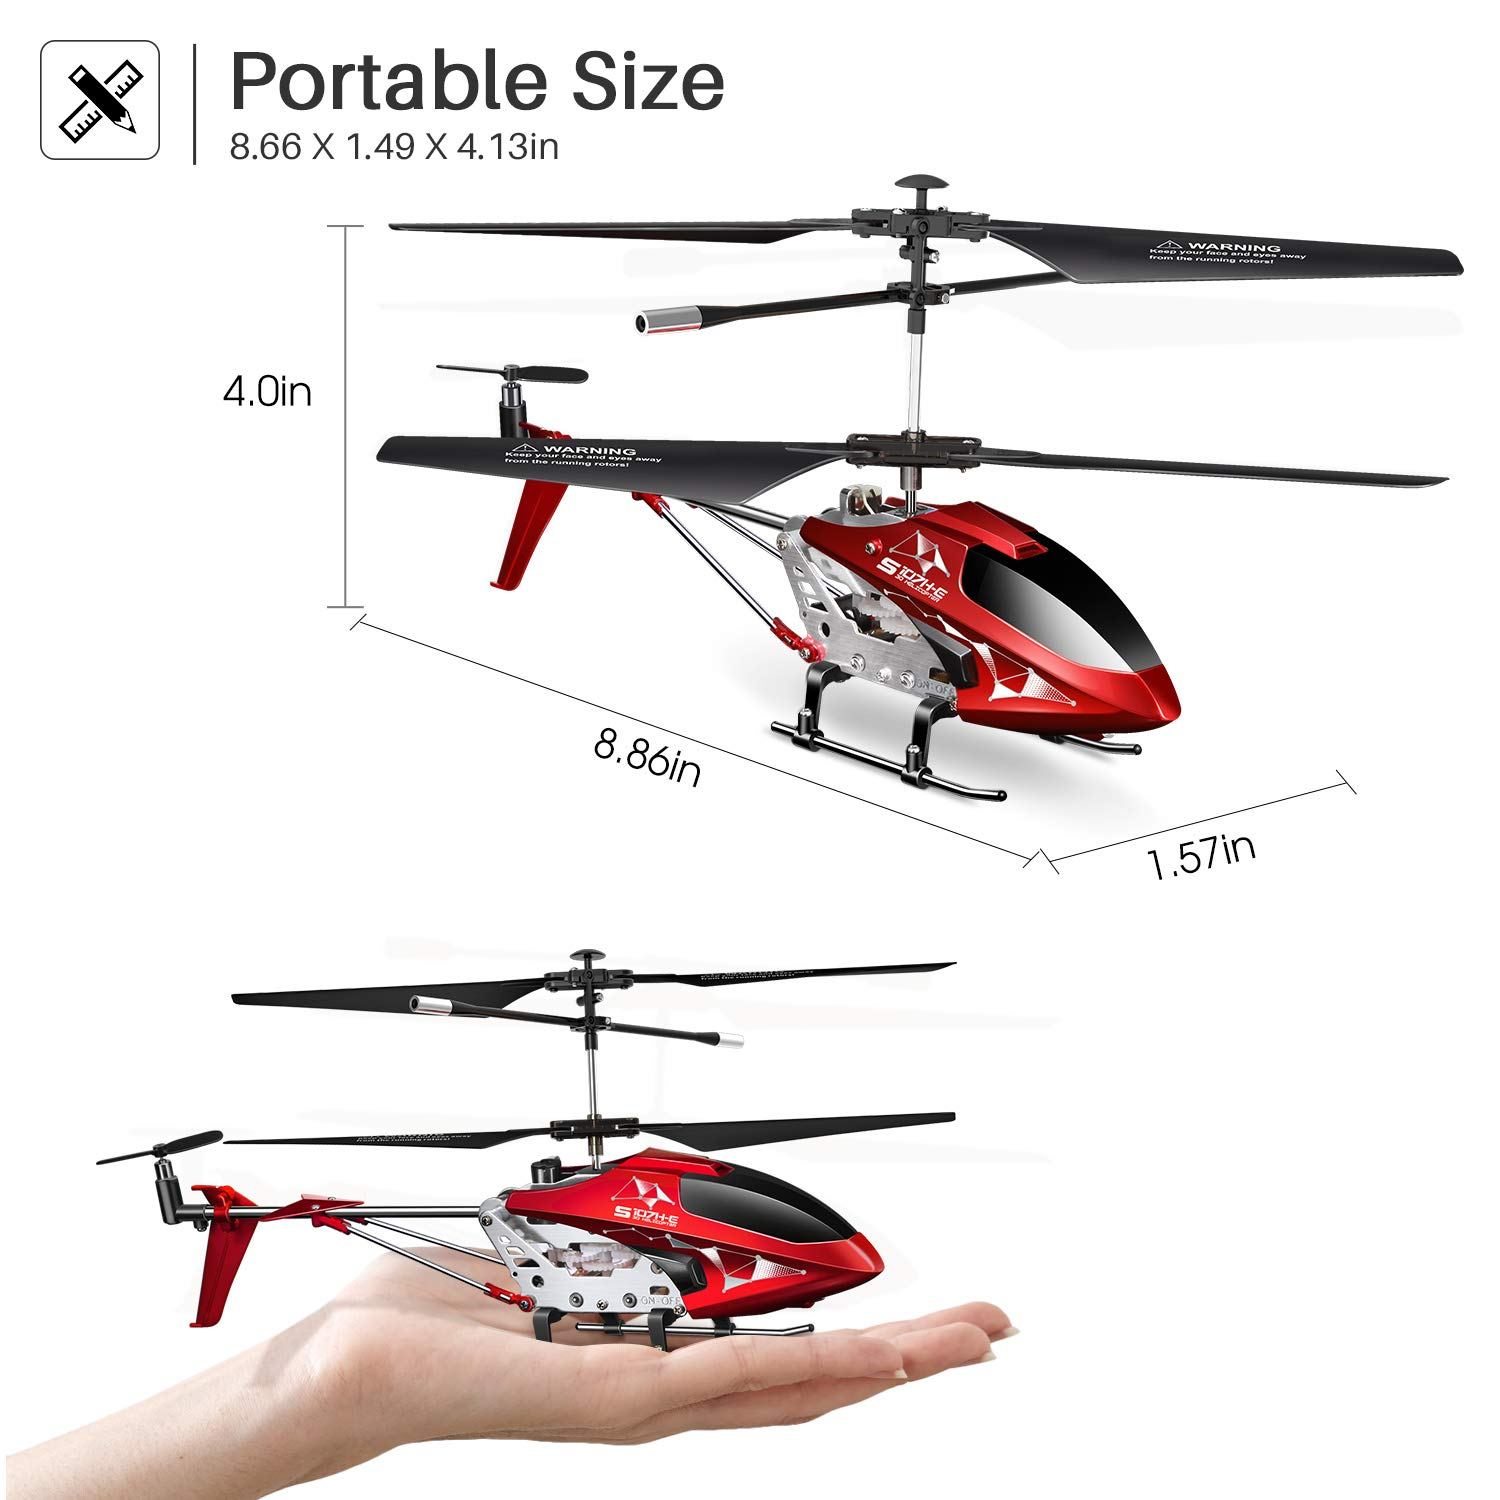 LED Light for Indoor to Fly for Kids and Beginners One Key take Off//Landing Remote Control Helicopter Gyro Stabilizer and High /&Low Speed S107H Aircraft with Altitude Hold Green 3.5 Channel